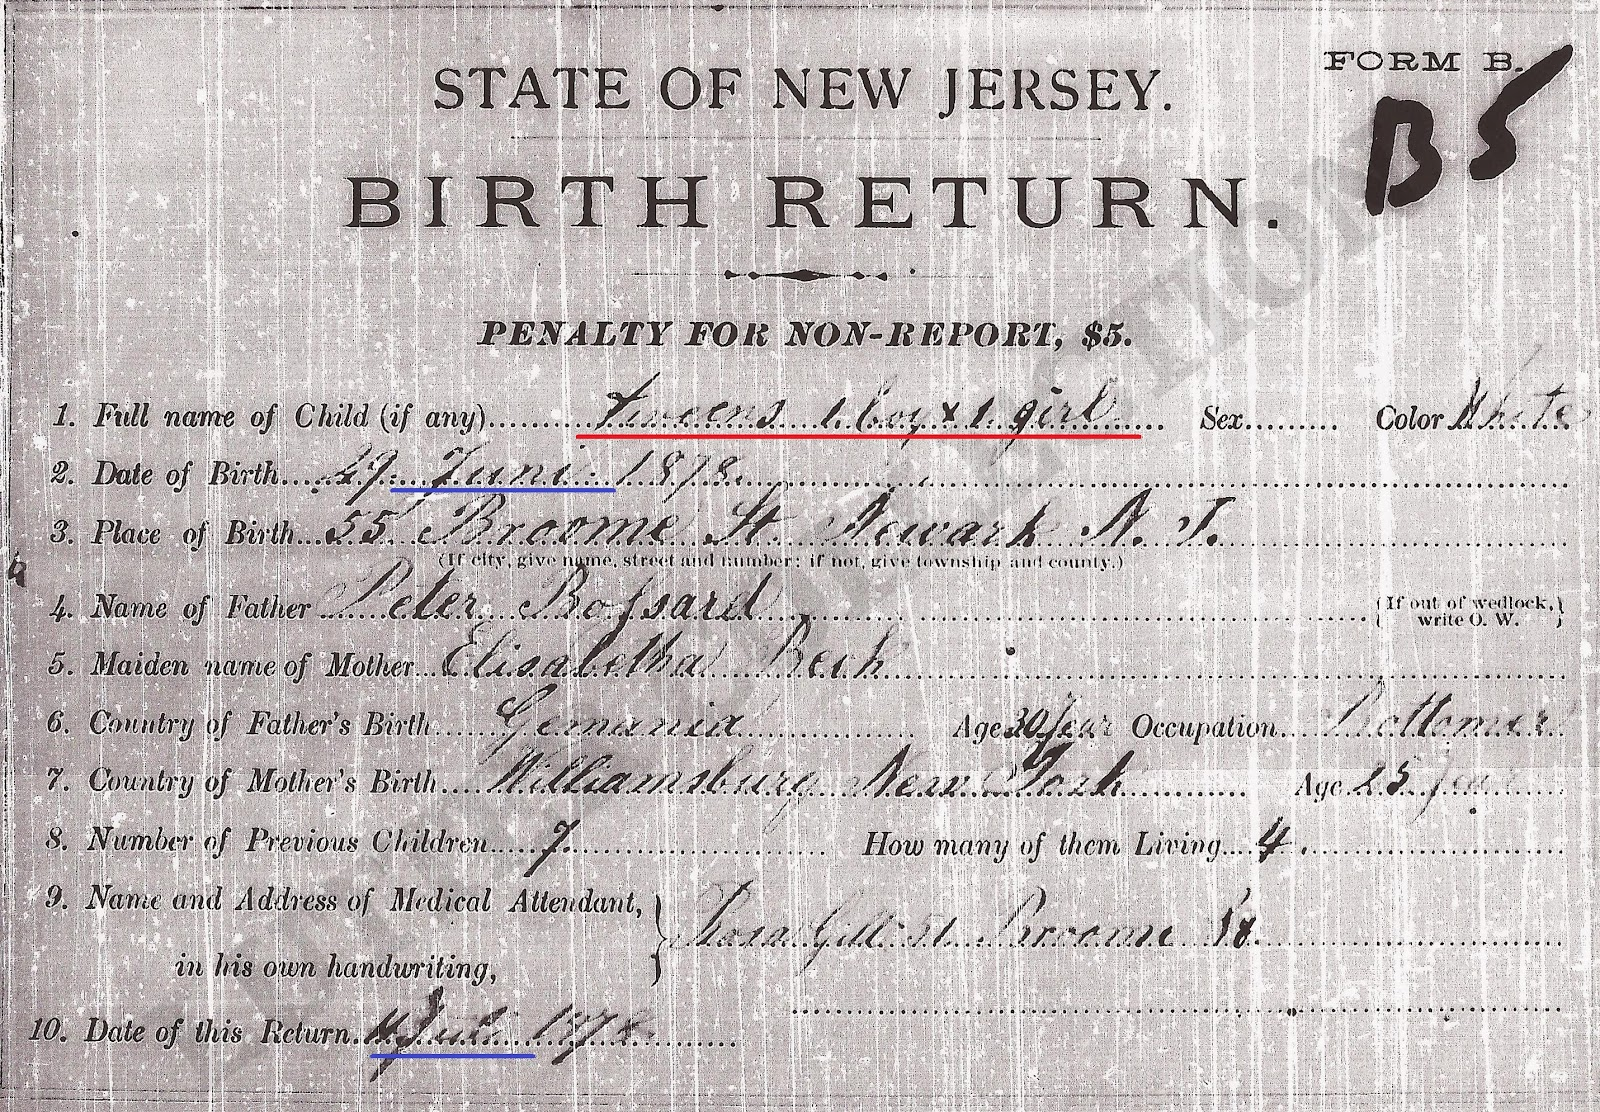 Family history research by jody birth certificate of twins new jersey birth certificate for bossard twins born 29 june 1878 volume 1 place 36 newark essex county note that the months are in german xflitez Choice Image